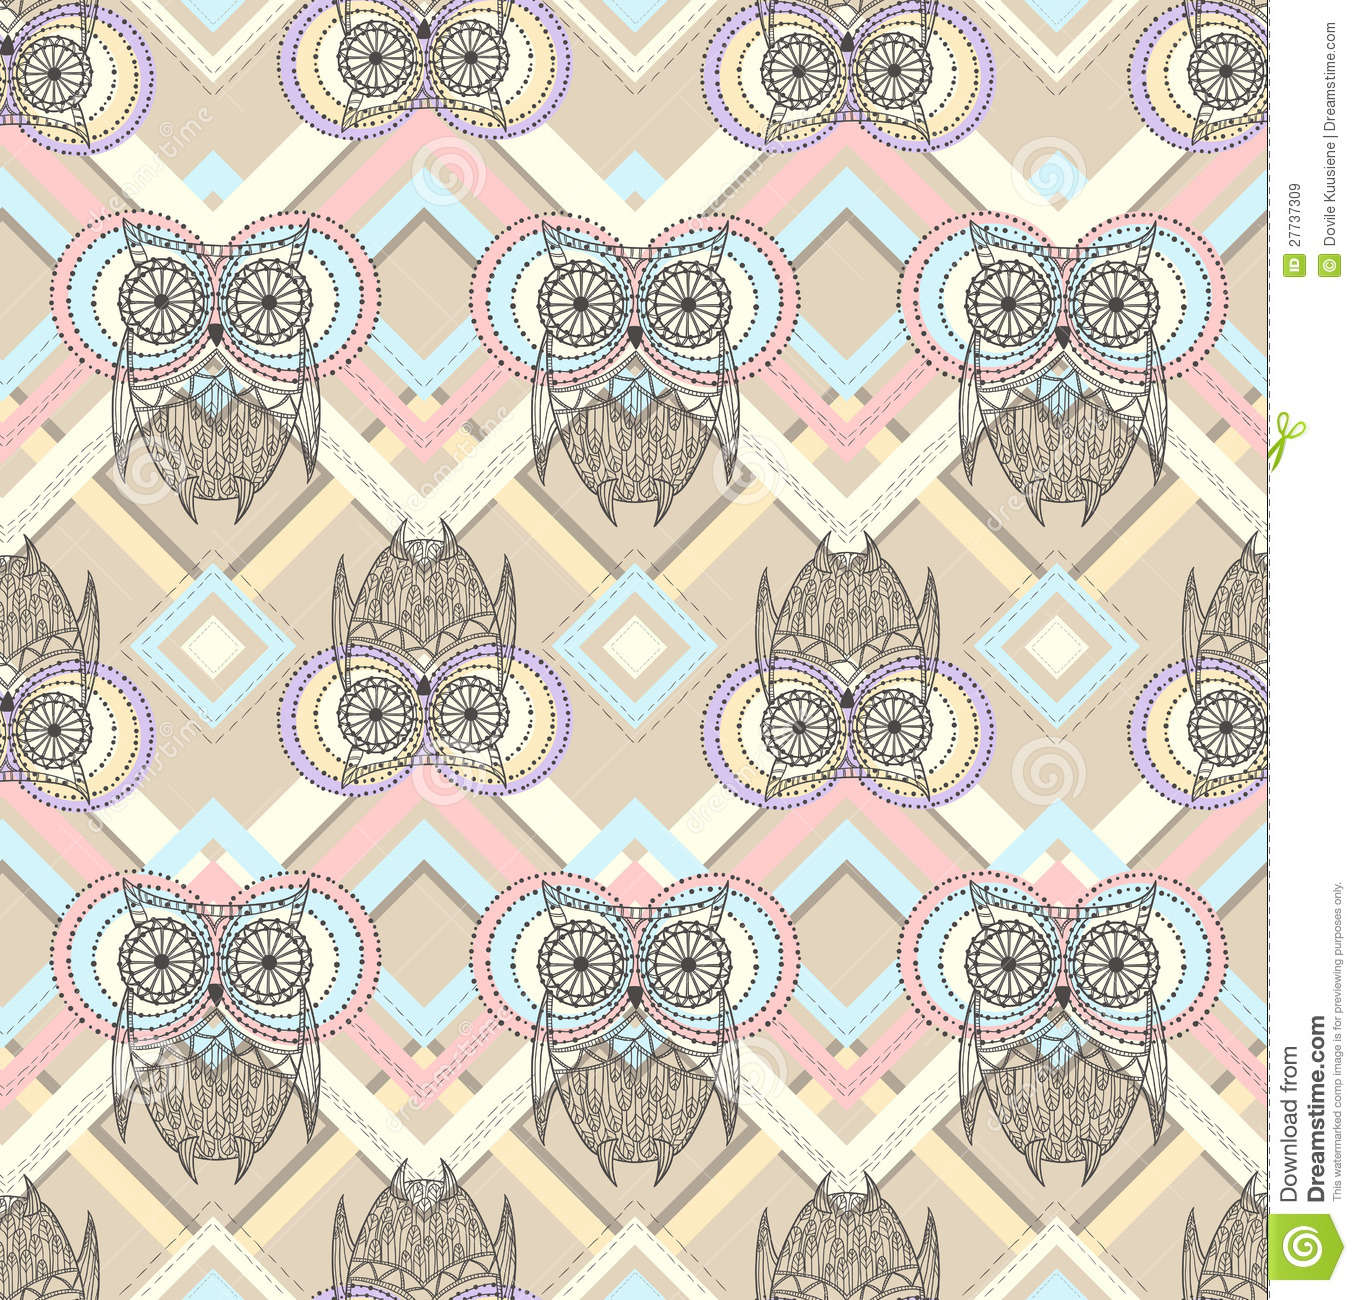 Cute Owl Seamless Pattern Royalty Free Stock Images - Image: 27737309